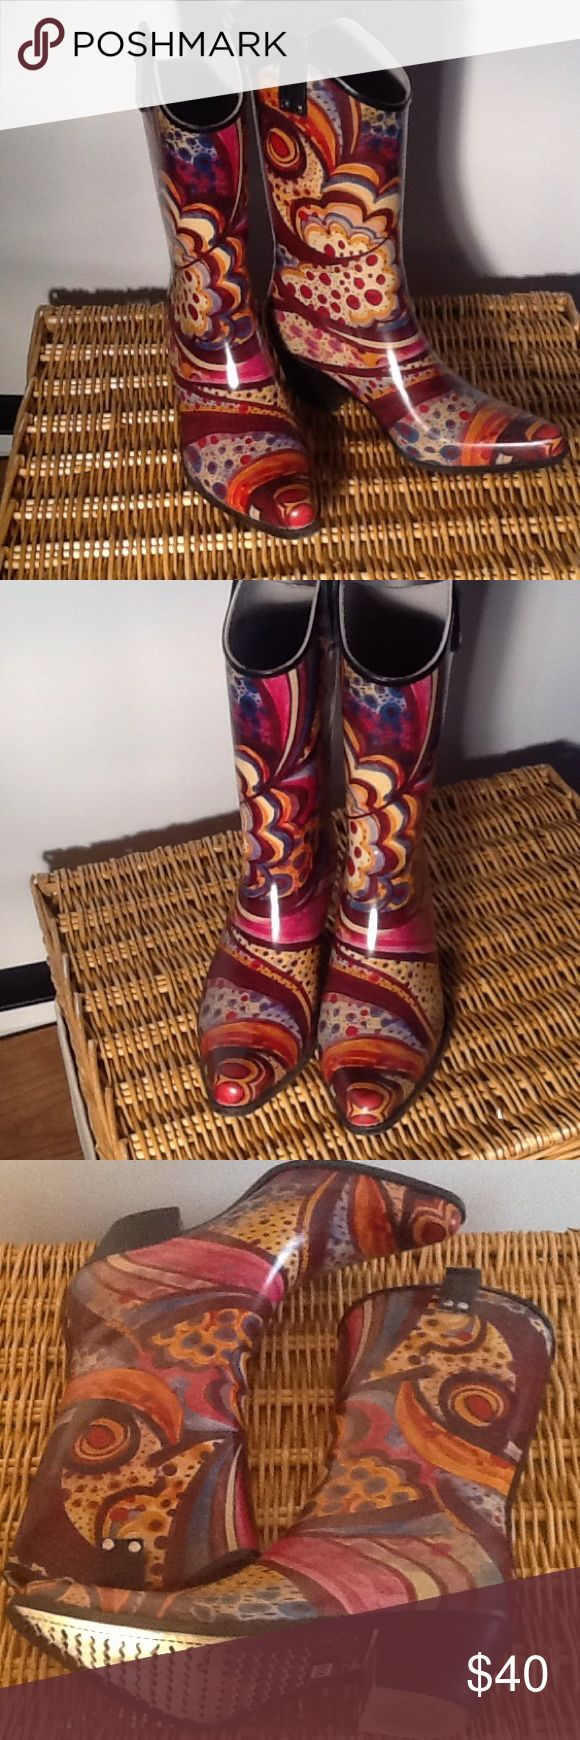 Nomad cowboy style rain boots New condition! Cowboy style rain boot. Made with durable rubber and a non-slip sole. Awesome, fun pattern! Nomad Shoes Winter & Rain Boots